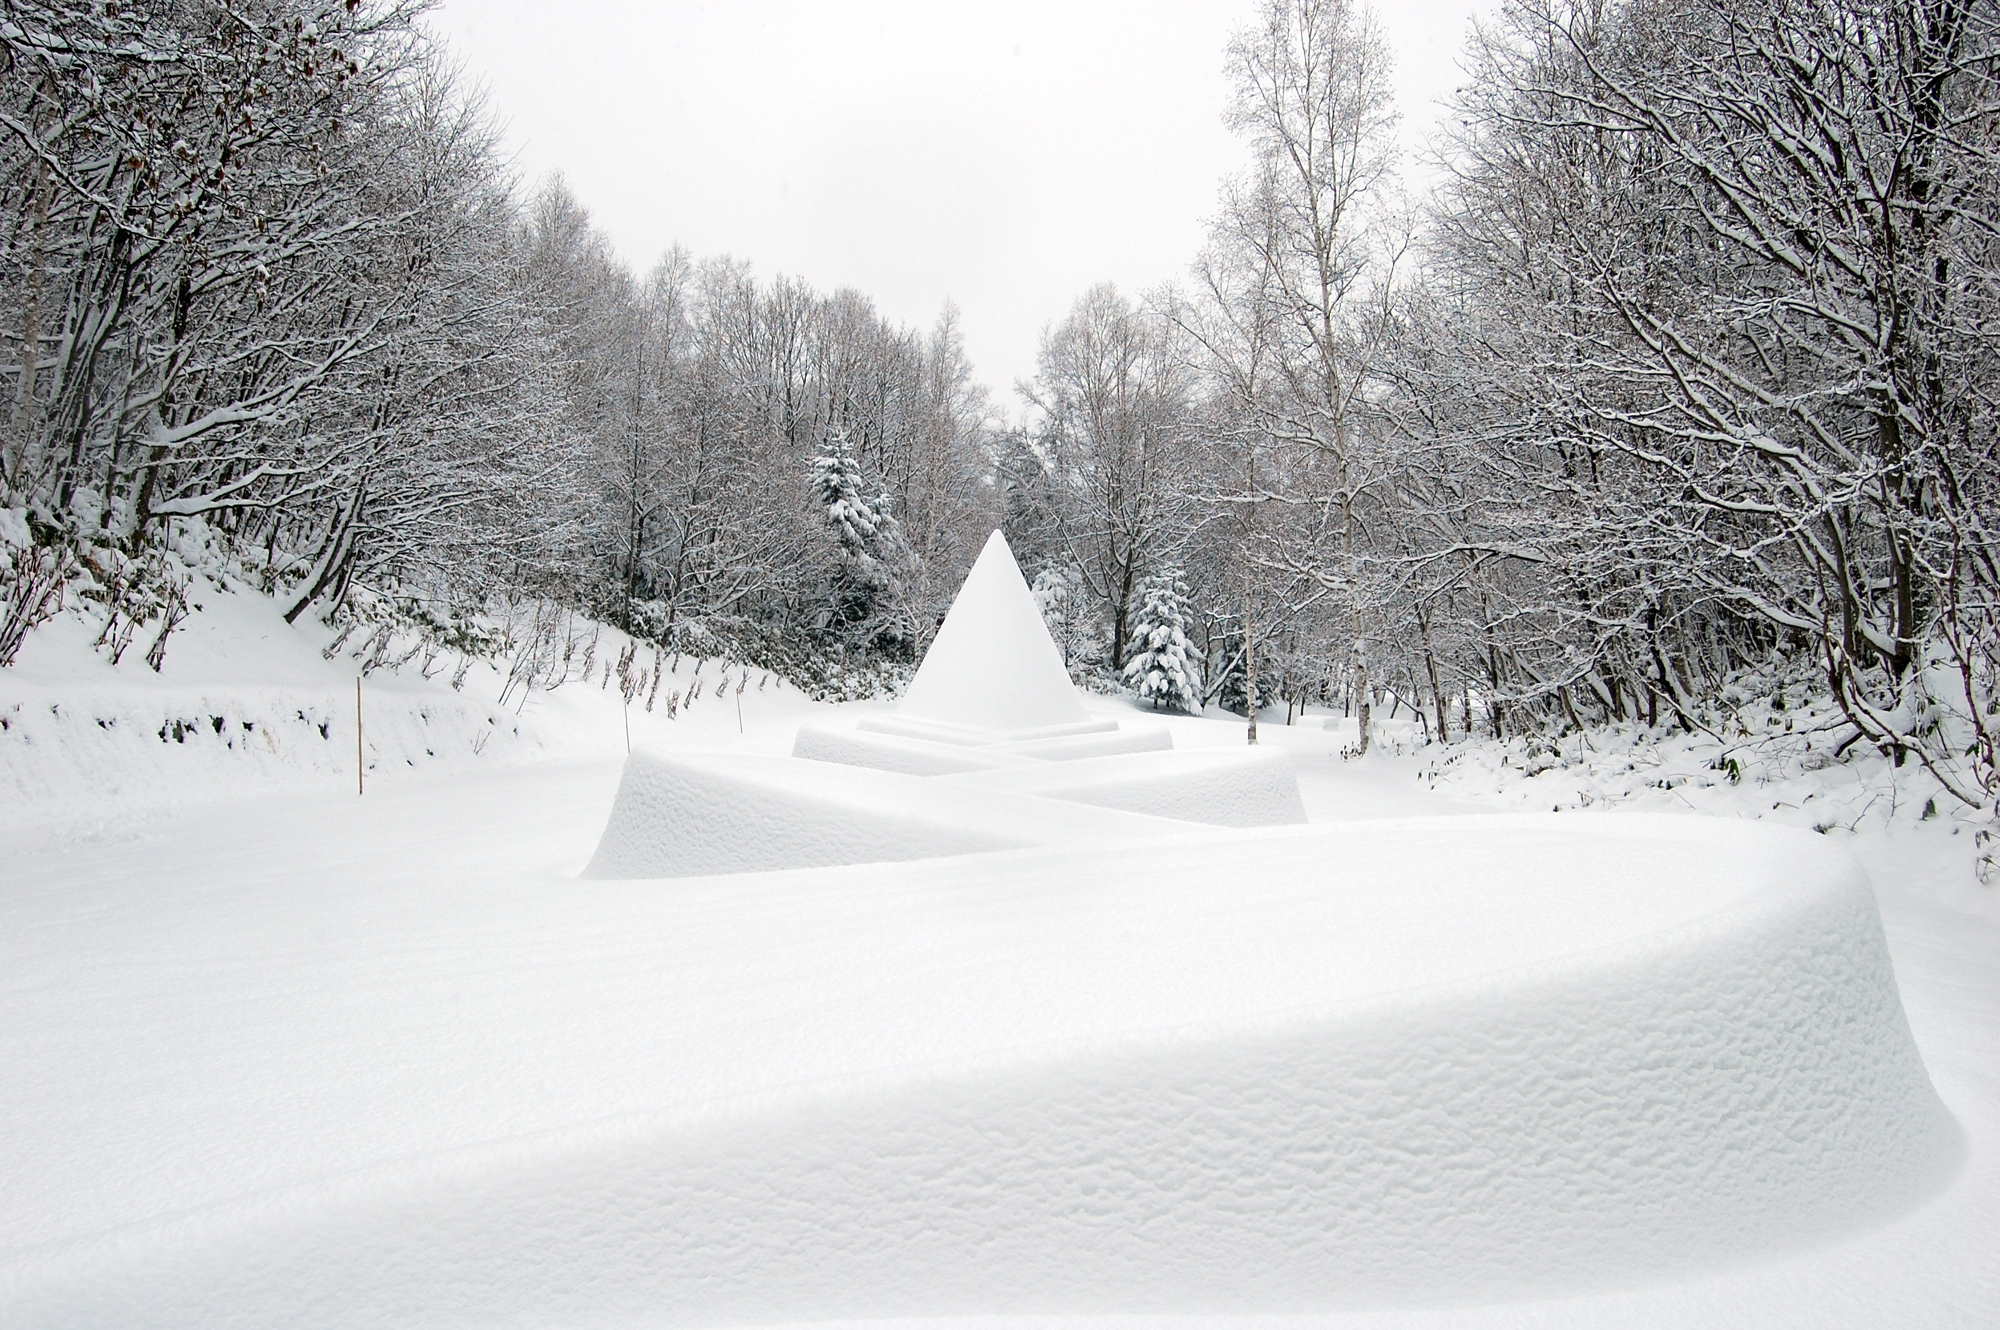 Let's walk by 'Kanjiki' around the Sculpture Garden in Sapporo Art Park!